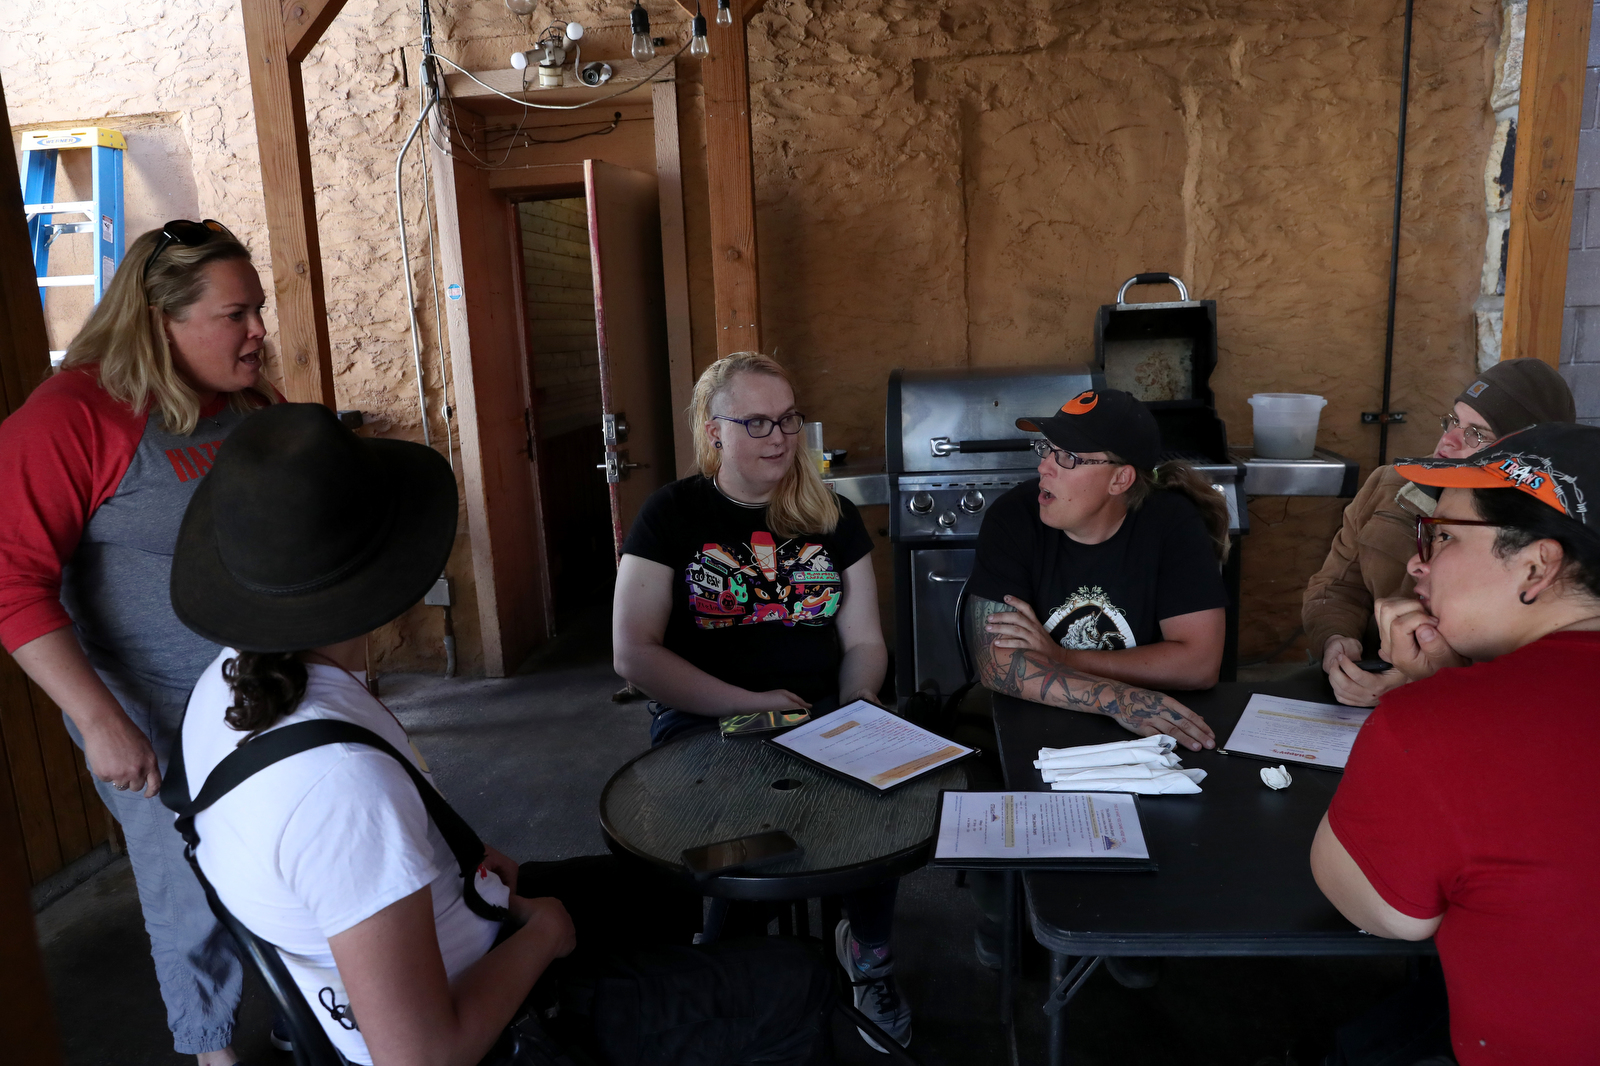 Members of the Tenacious Unicorn Ranch, from left, J Stanley, Kathryn Gibes, Penny Logue, Sky Nelson and Bonnie Nelson greet a woman, who preferred not to give her name, who just moved to the area with a transgender child as they wait for lunch at one of their favorite spots to eat in town, Chappy's Bar and Grill, in Westcliffe, Colorado.